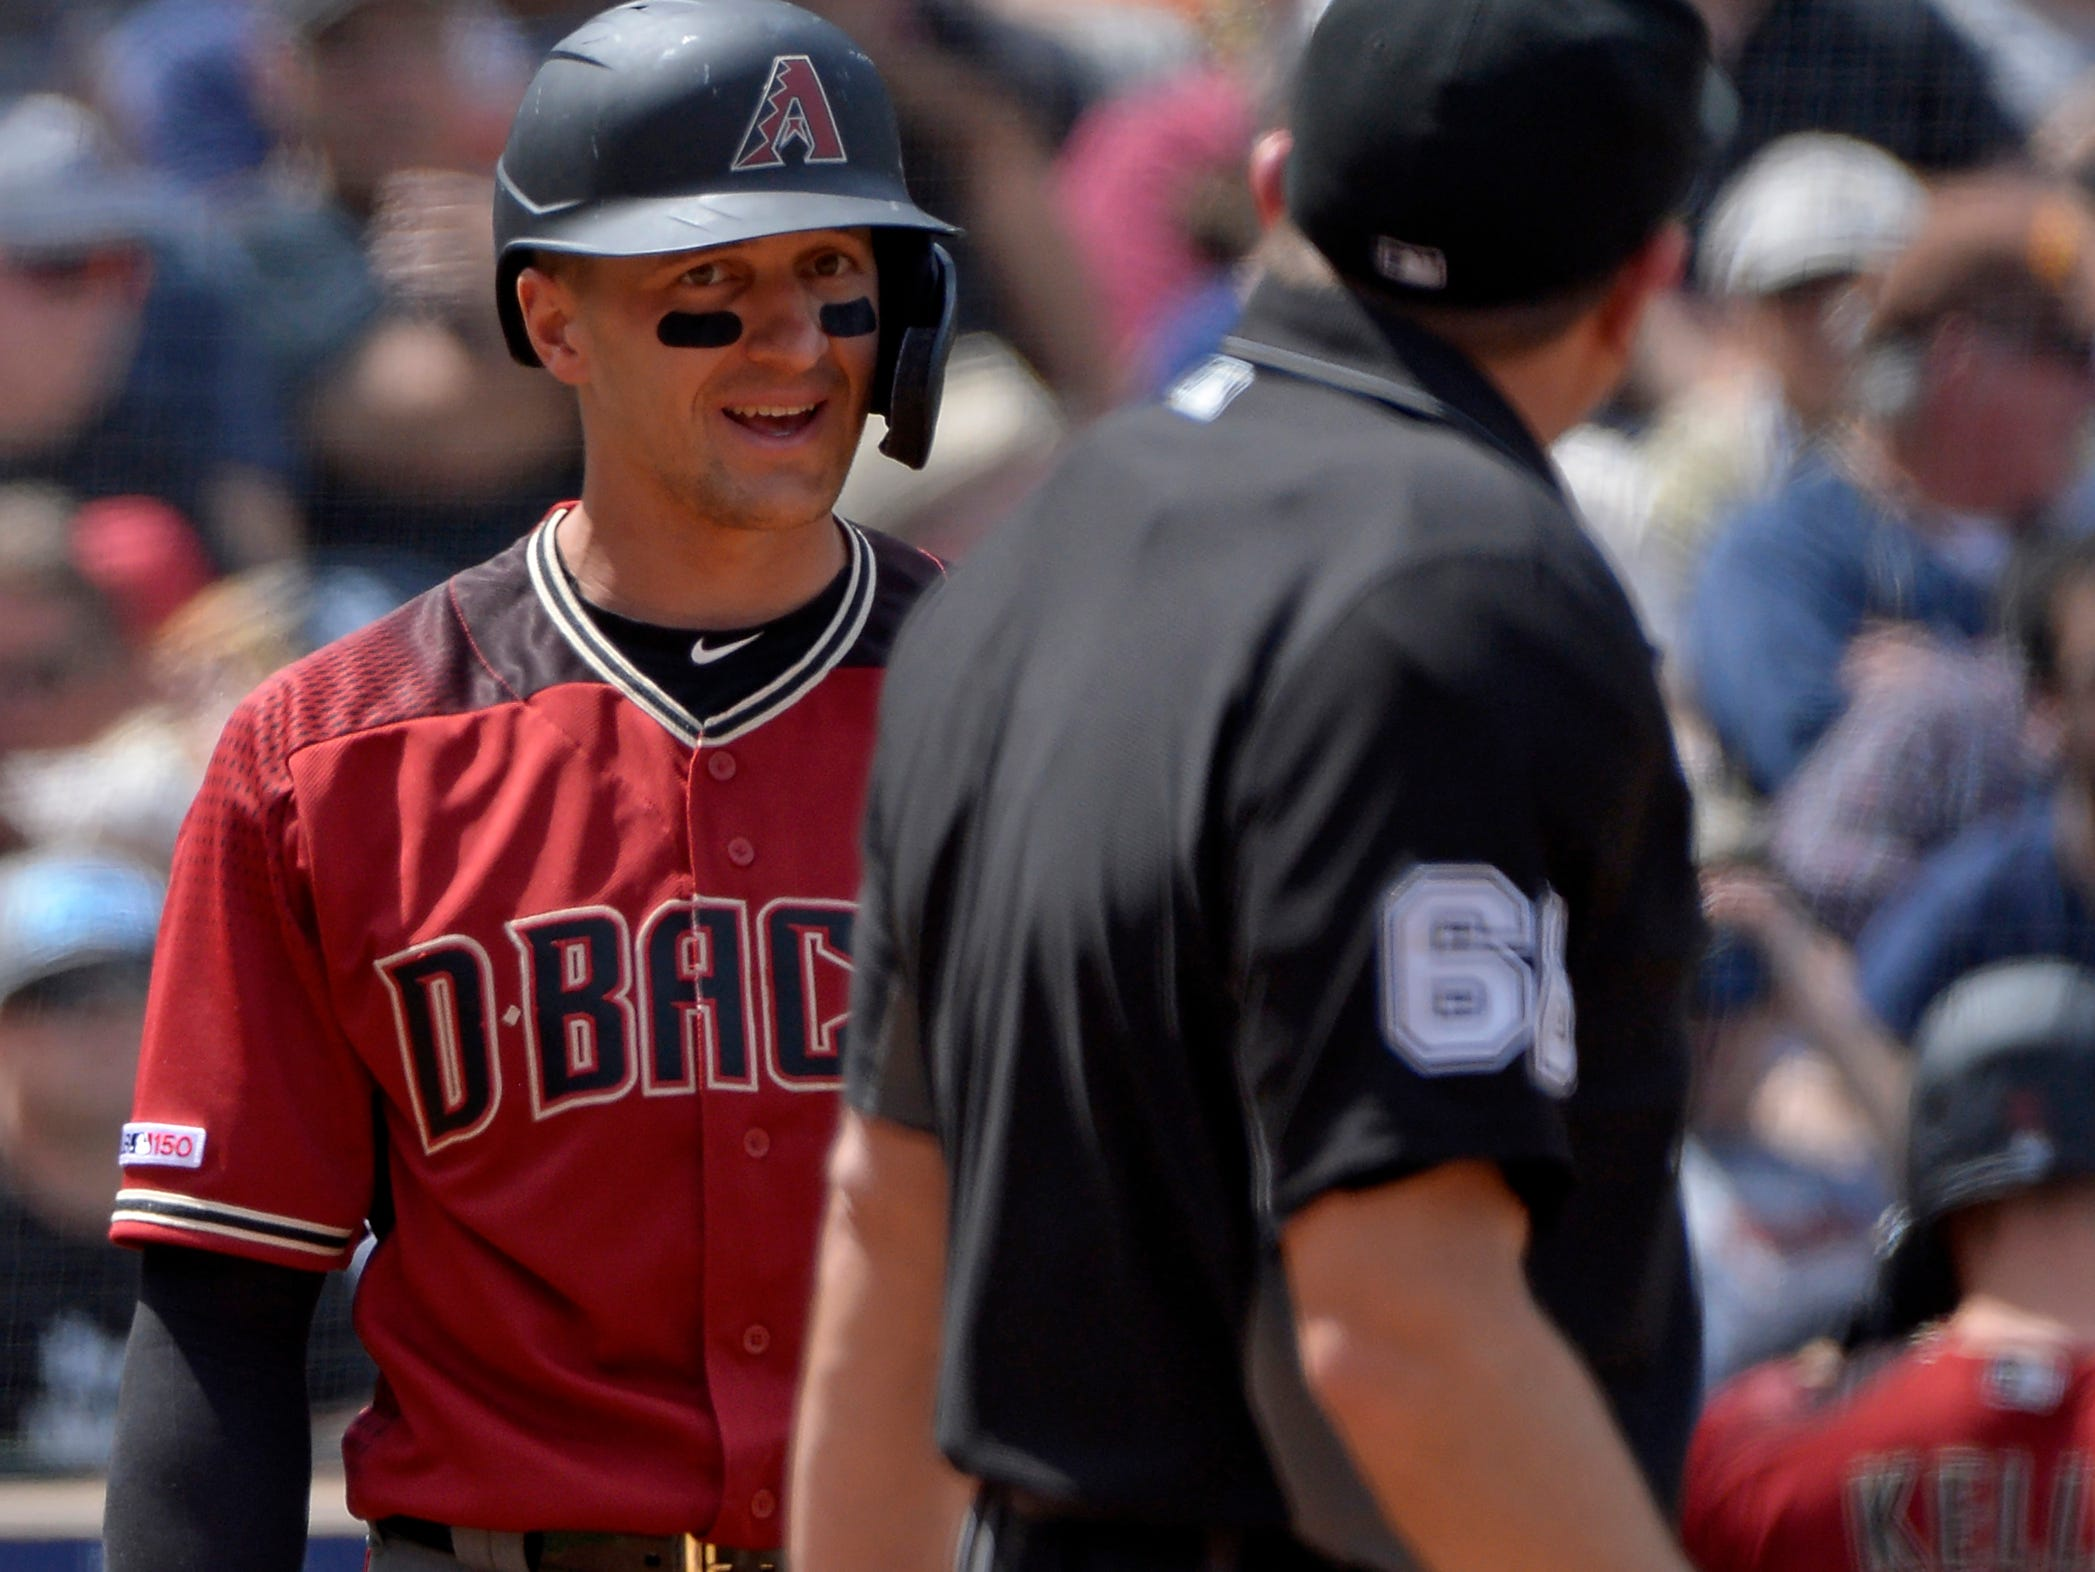 Apr 3, 2019; San Diego, CA, USA; Arizona Diamondbacks shortstop Nick Ahmed (left) argues with umpire Chris Guccione (68) after striking out in the fourth inning against the San Diego Padres at Petco Park. Mandatory Credit: Jake Roth-USA TODAY Sports